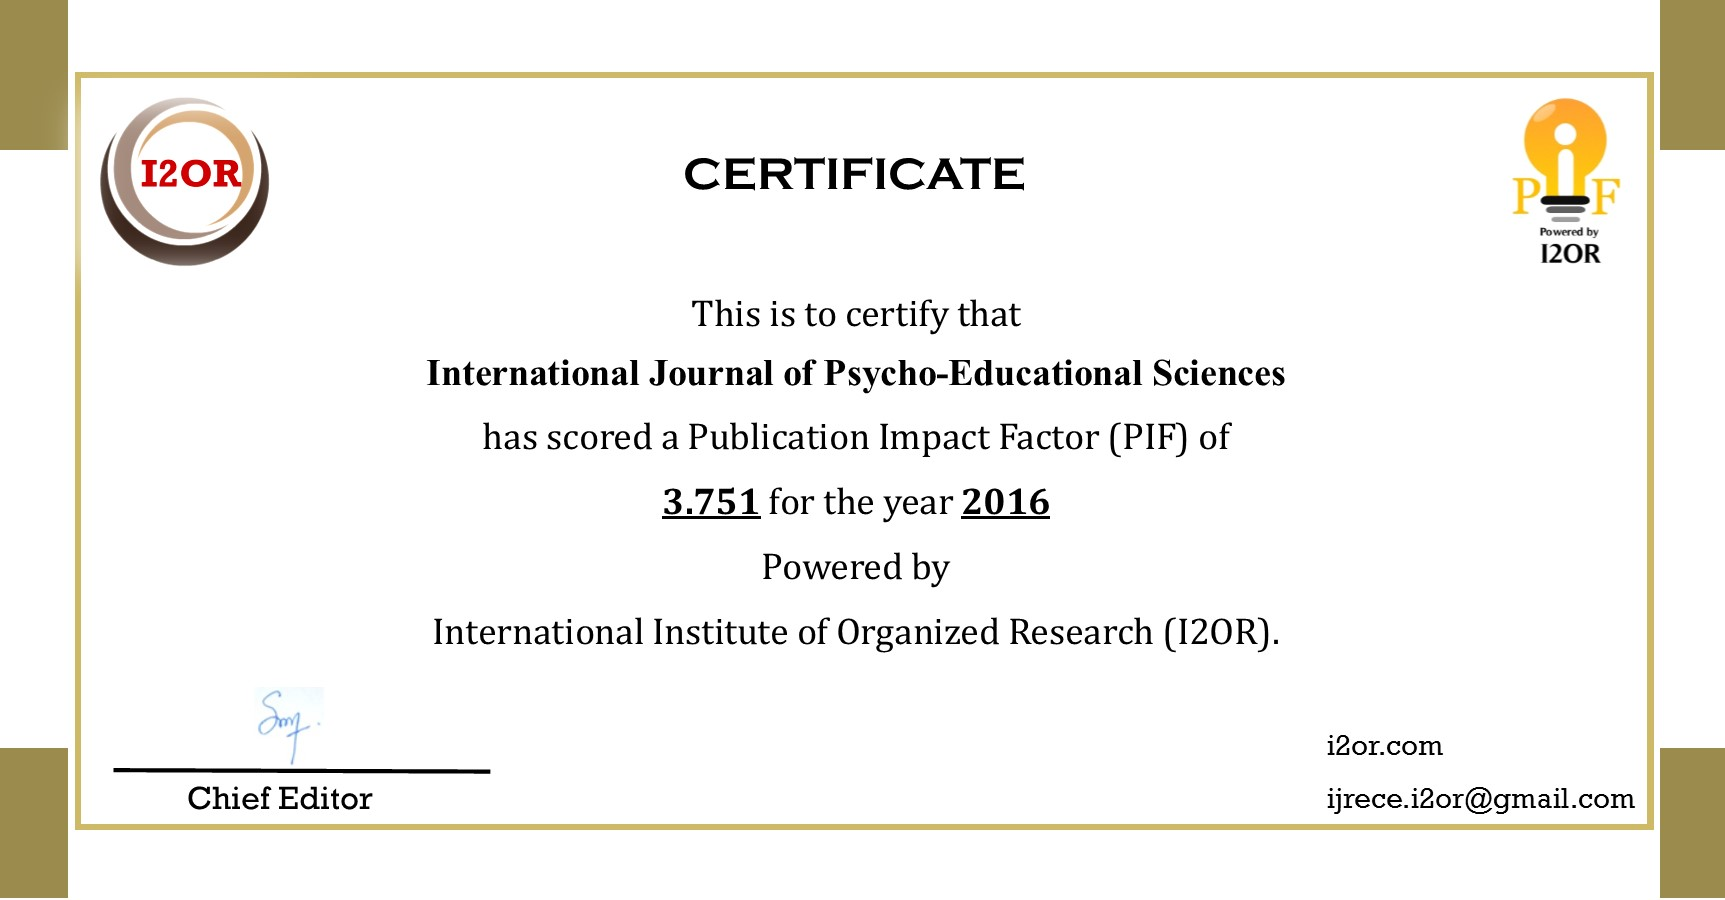 International-Journal-of-Psycho-Educational-Sciences-certificate-2016